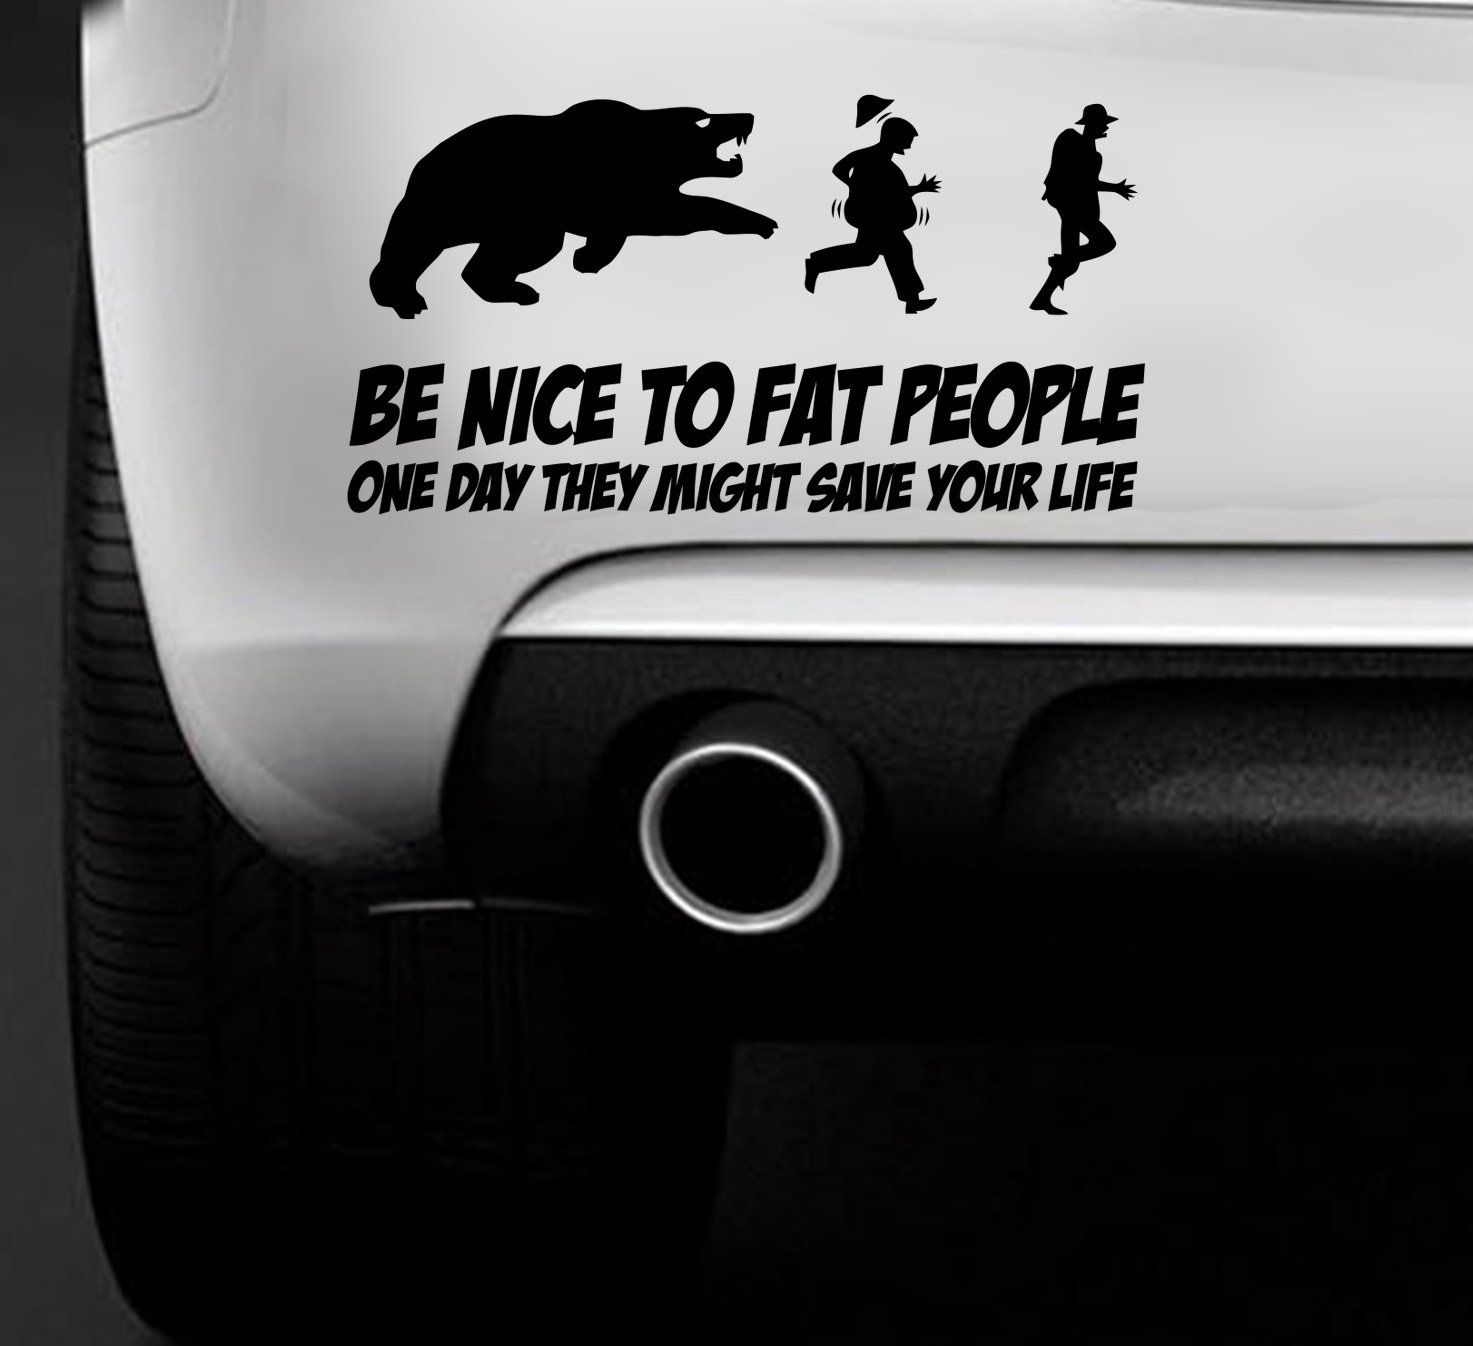 Be nice to fat people funny car van sticker car boat window vinyl decal amazon co uk car motorbike